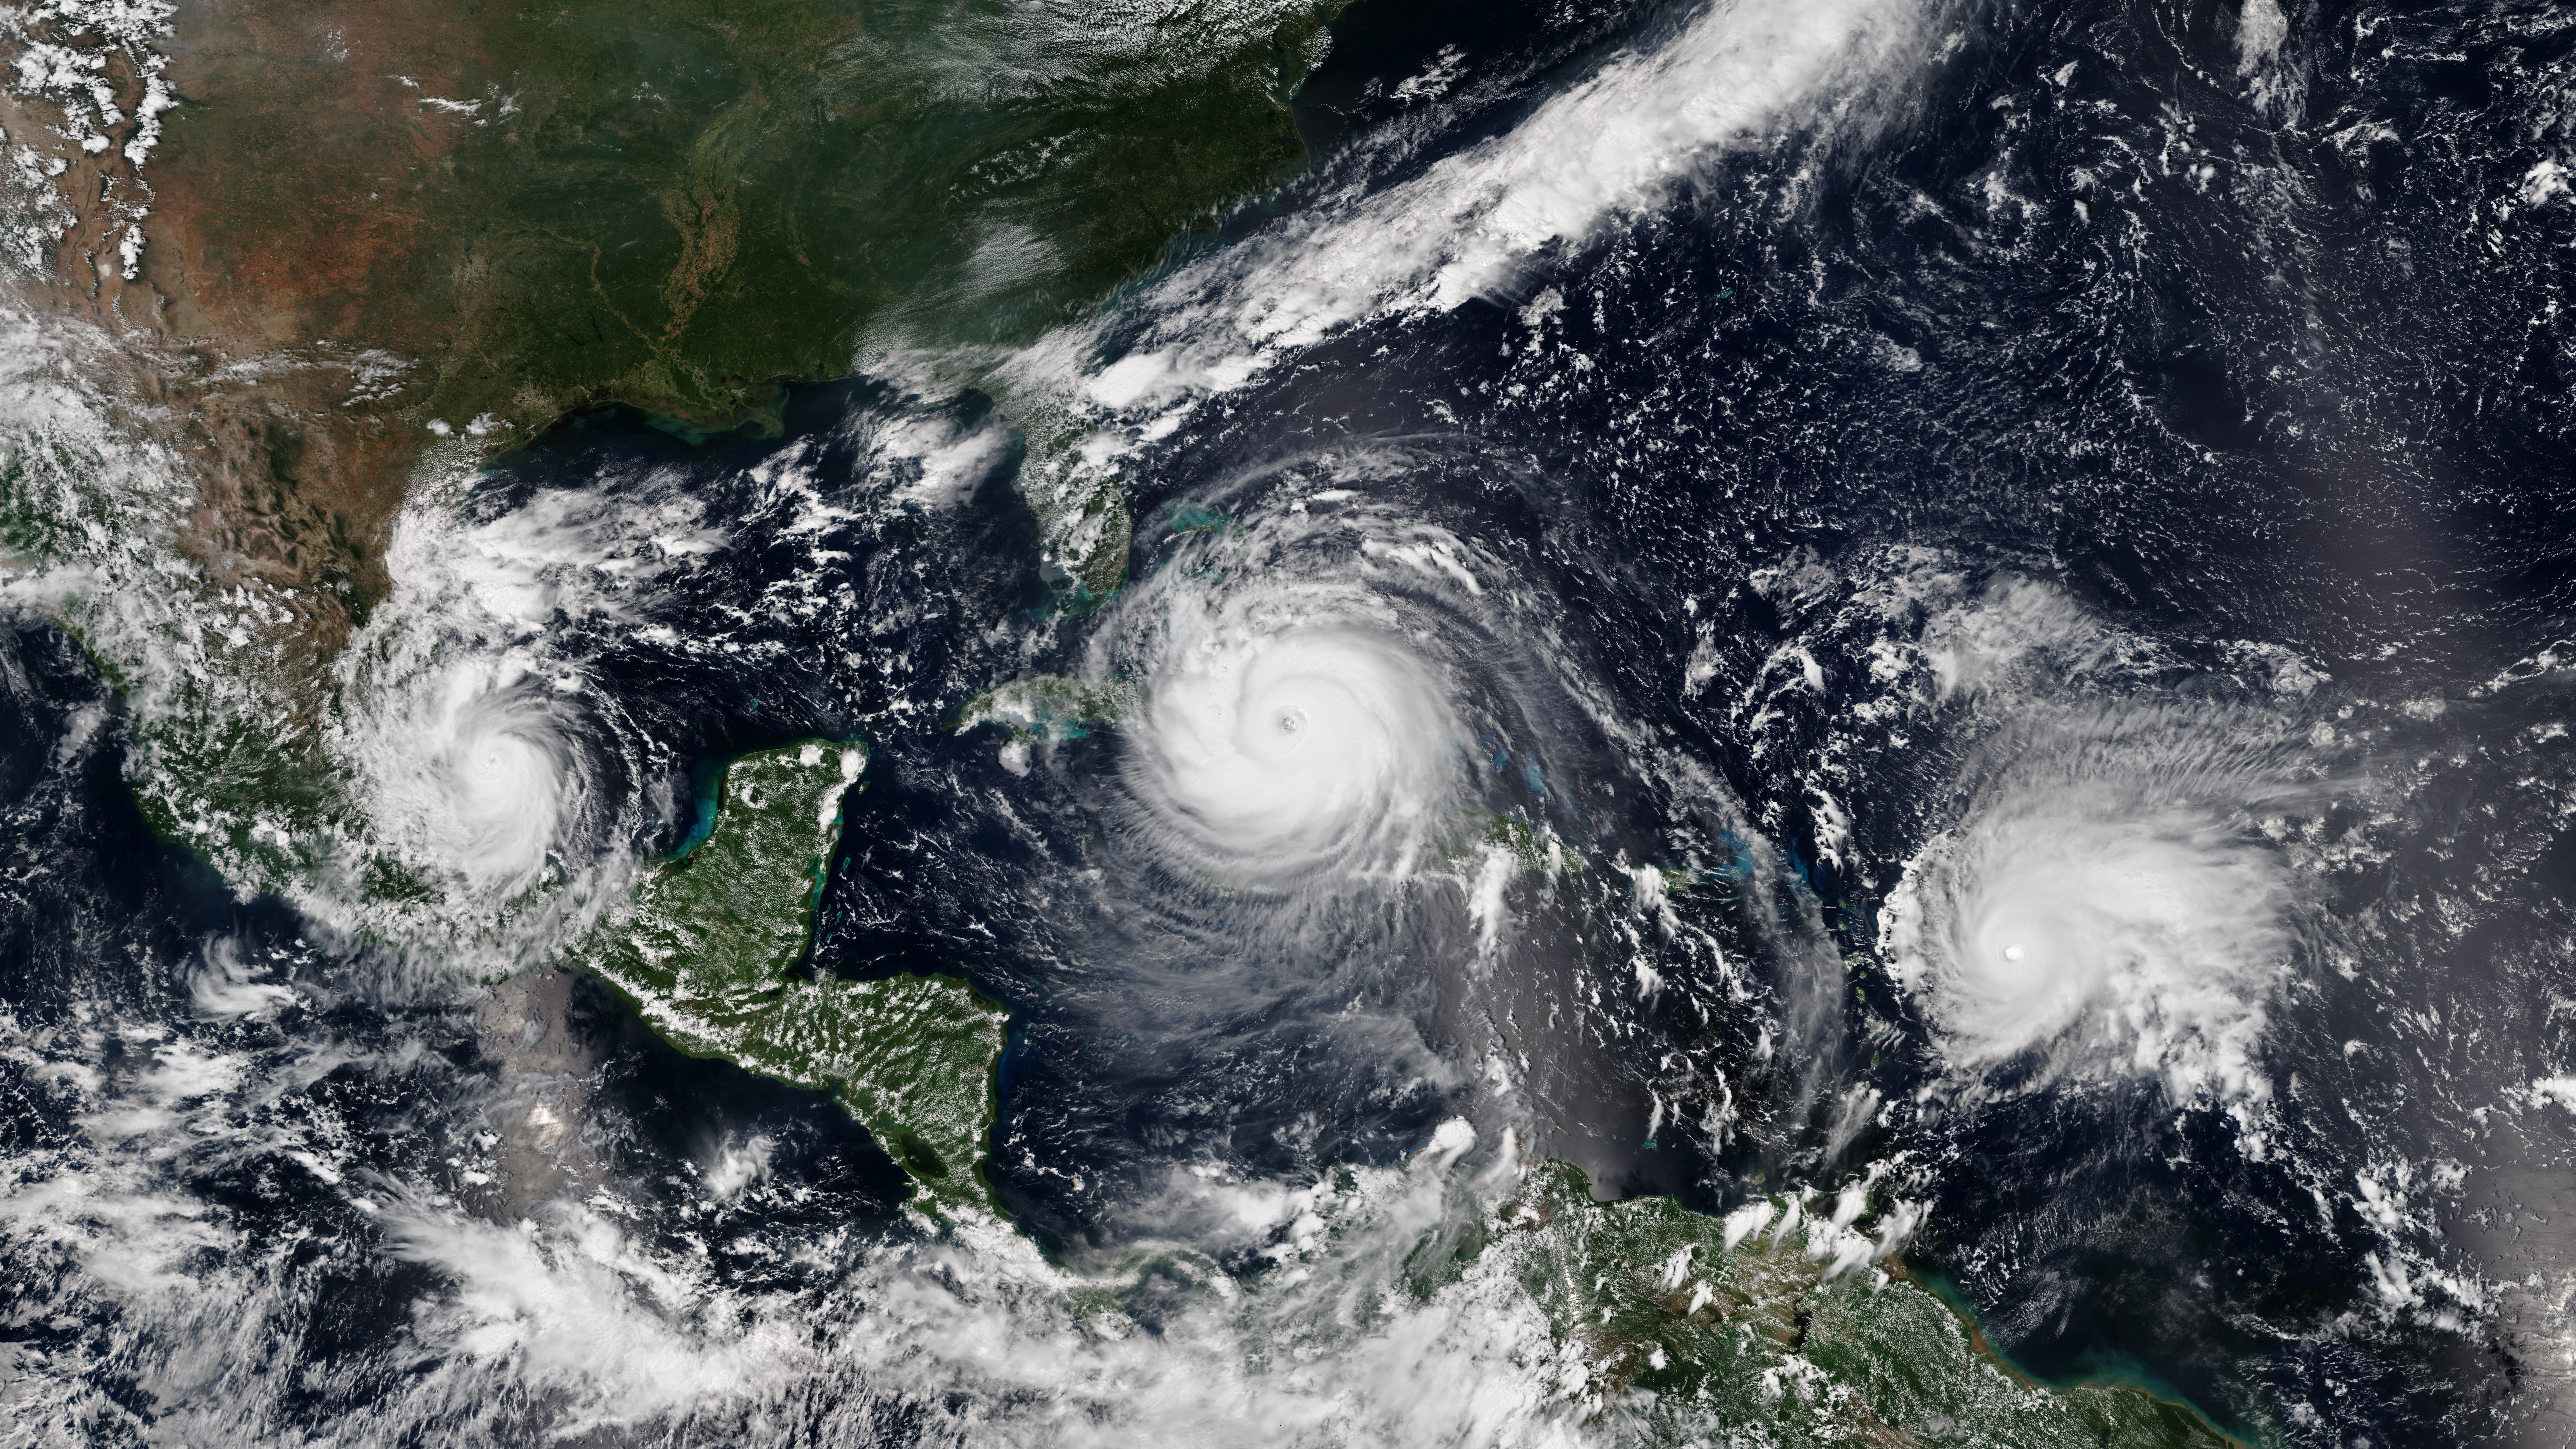 Three simultaneous hurricanes active on September 8